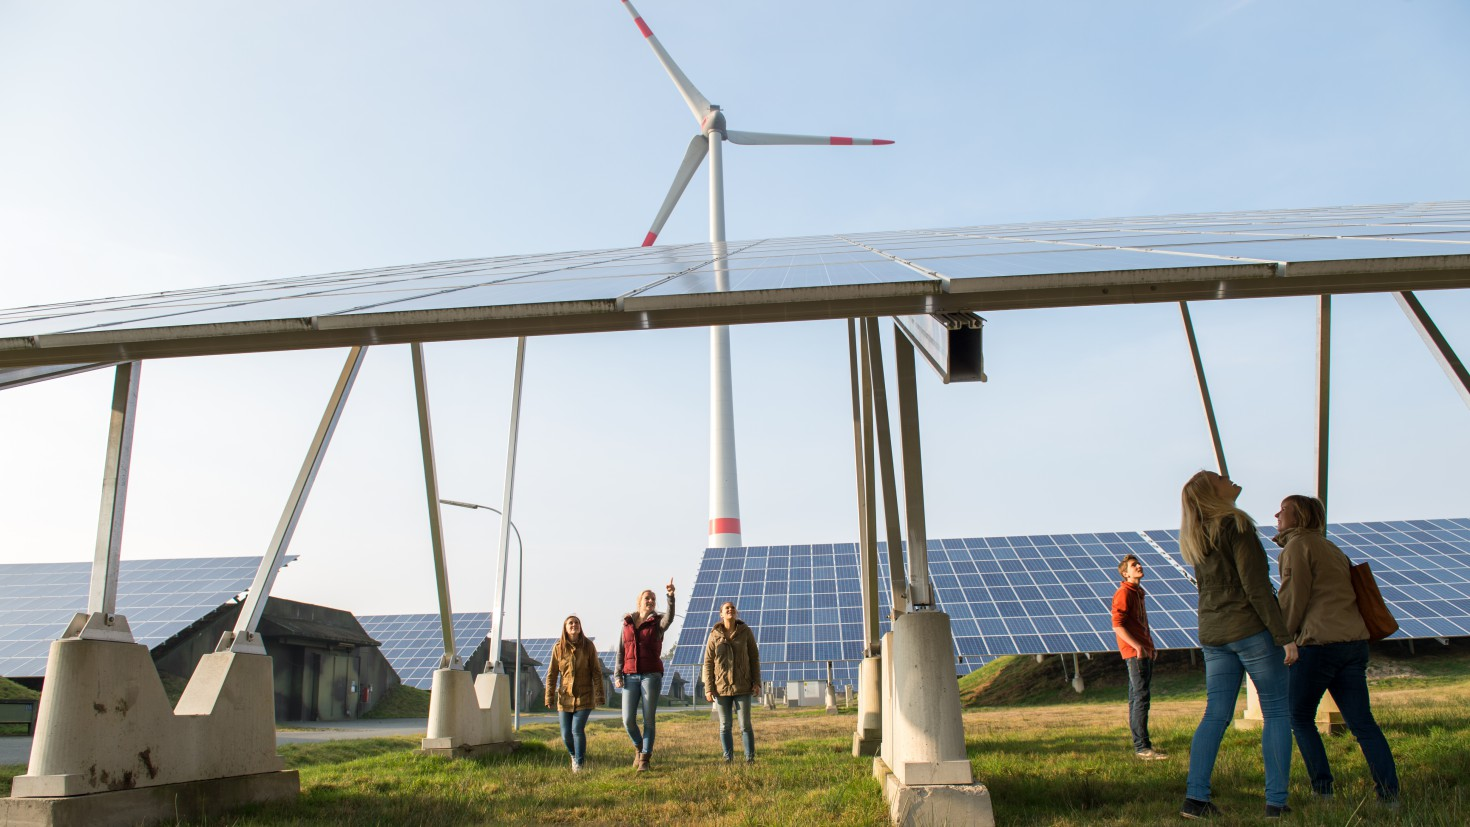 Which policies drive renewable energy development in Europe? PHOTO: German youth visiting a renewable energy park in Saerberg. Credit: Bente Stachowske, Greenpeace.